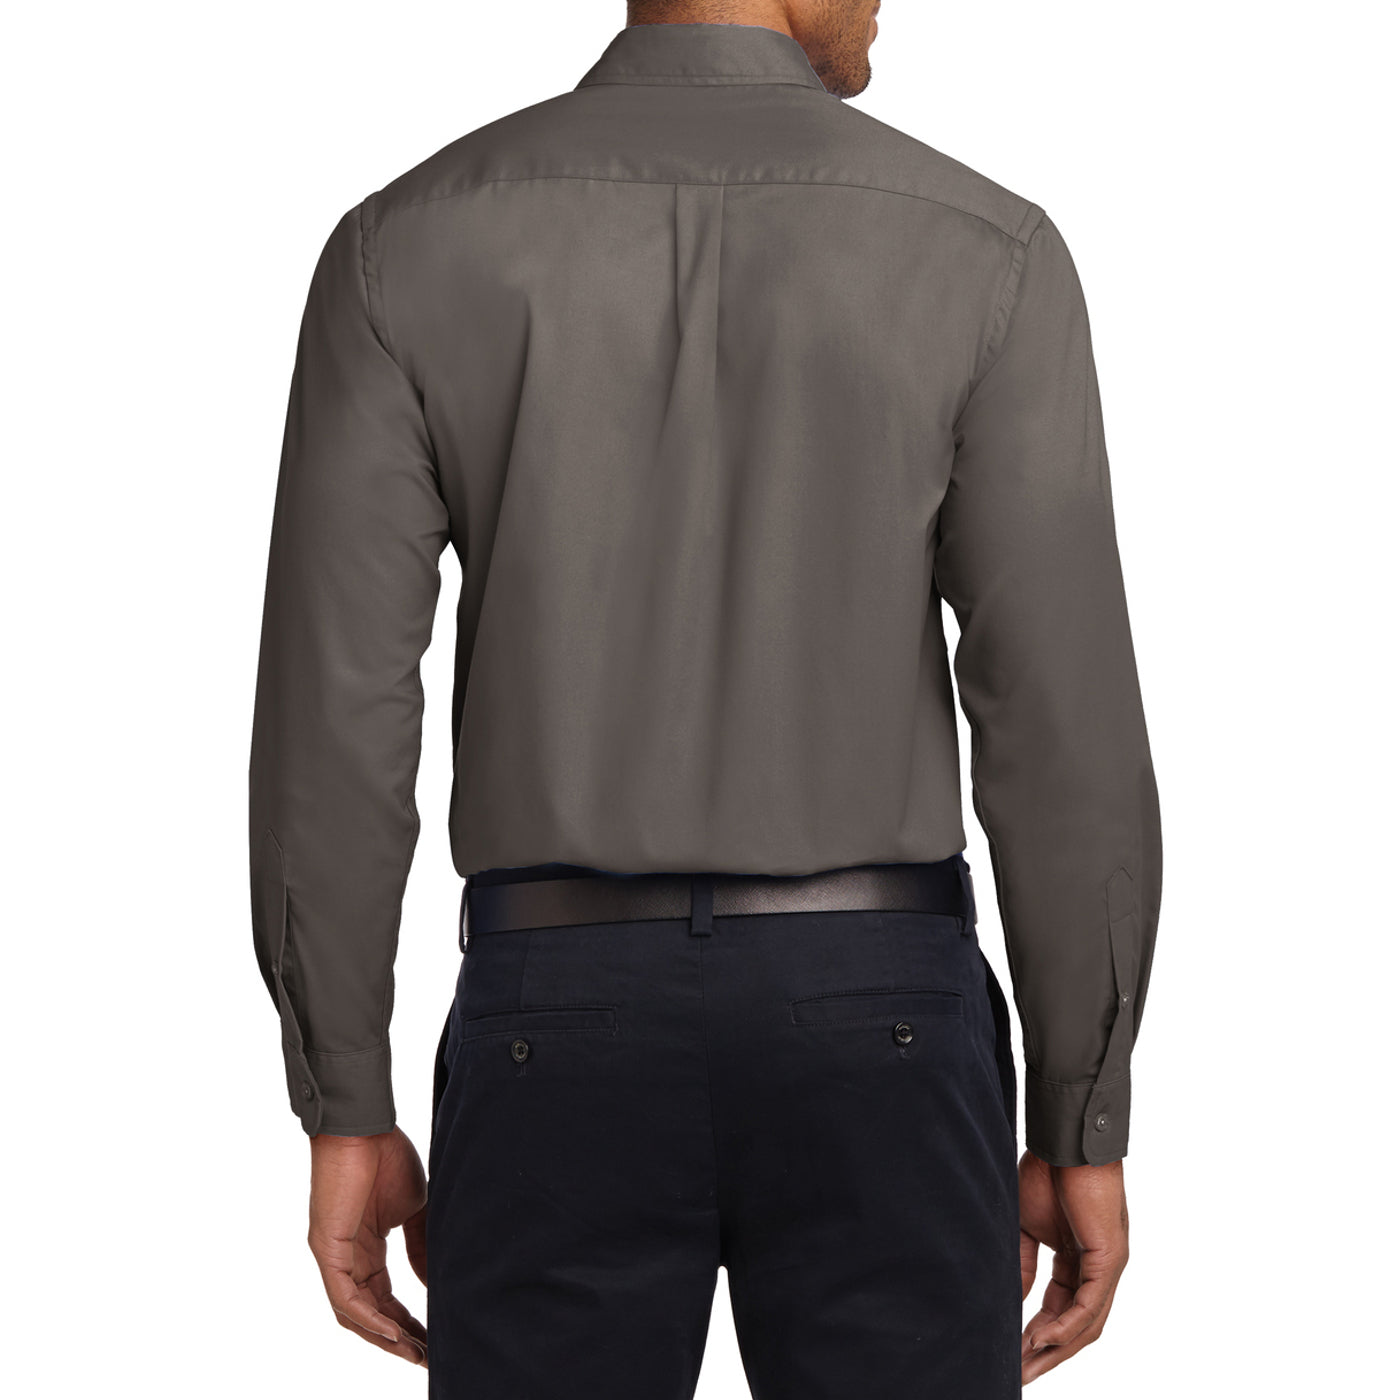 Men's Long Sleeve Easy Care Shirt - Bark - Back